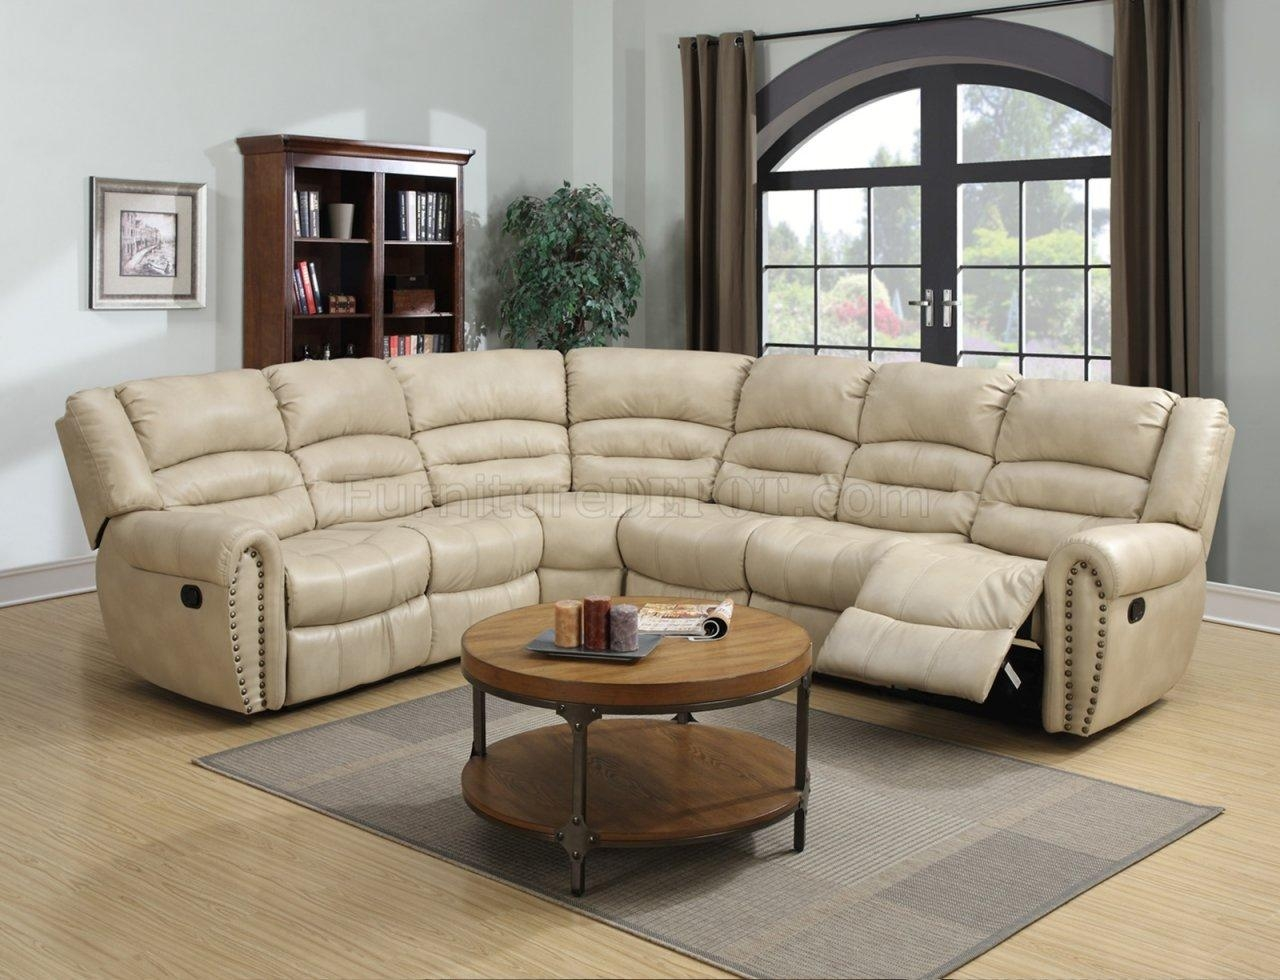 G687 Motion Sectional Sofa In Beige Bonded Leatherglory Within Motion Sectional Sofas (View 7 of 20)